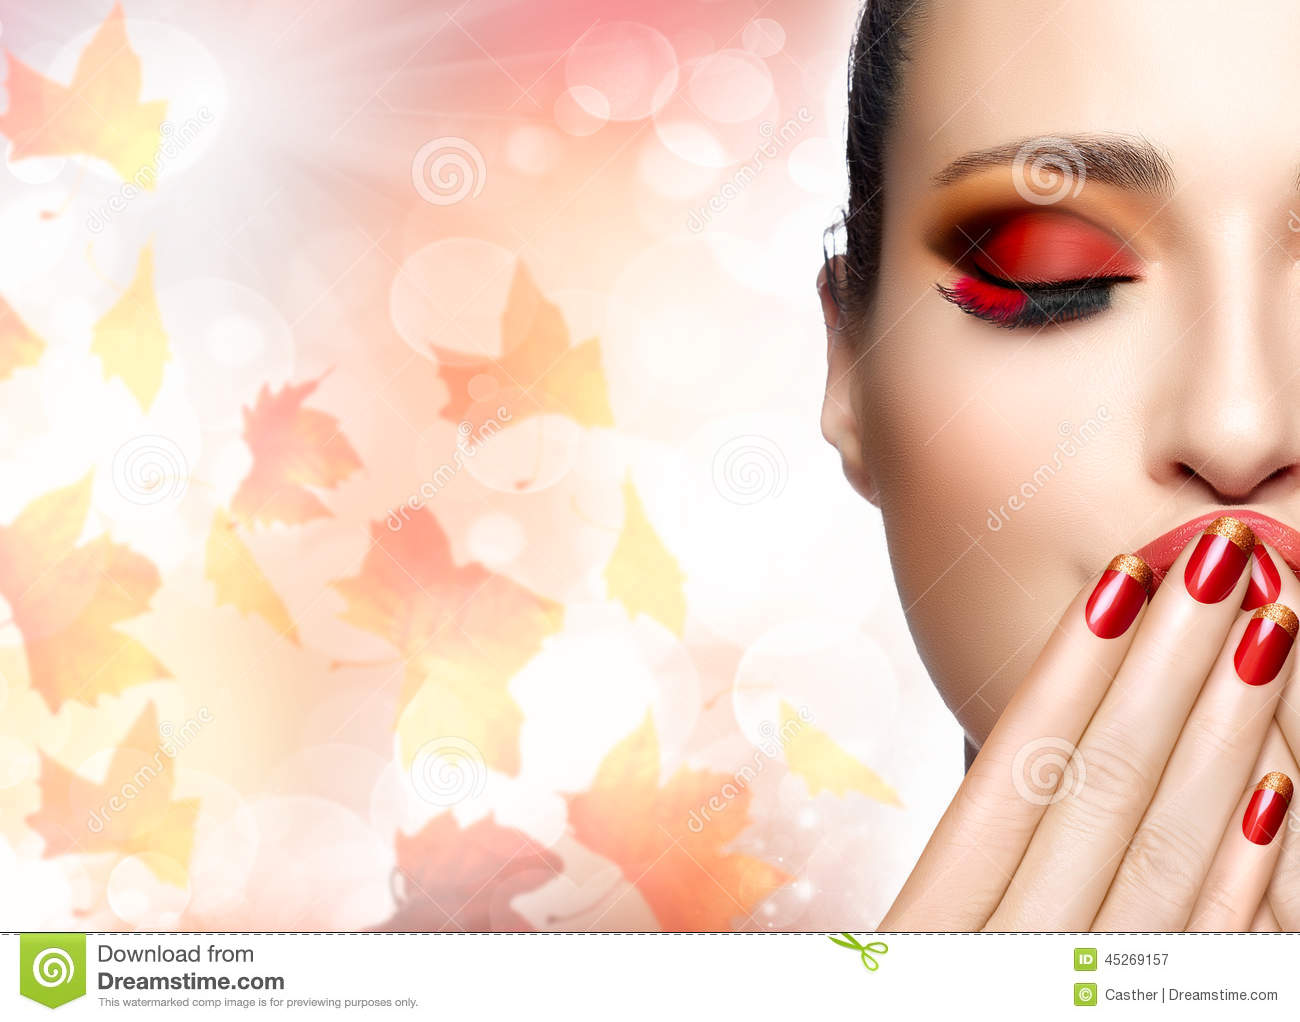 Autumn Makeup And Nail Art Trend Fall Beauty Fashion Girl Stock Photo Image 45269157